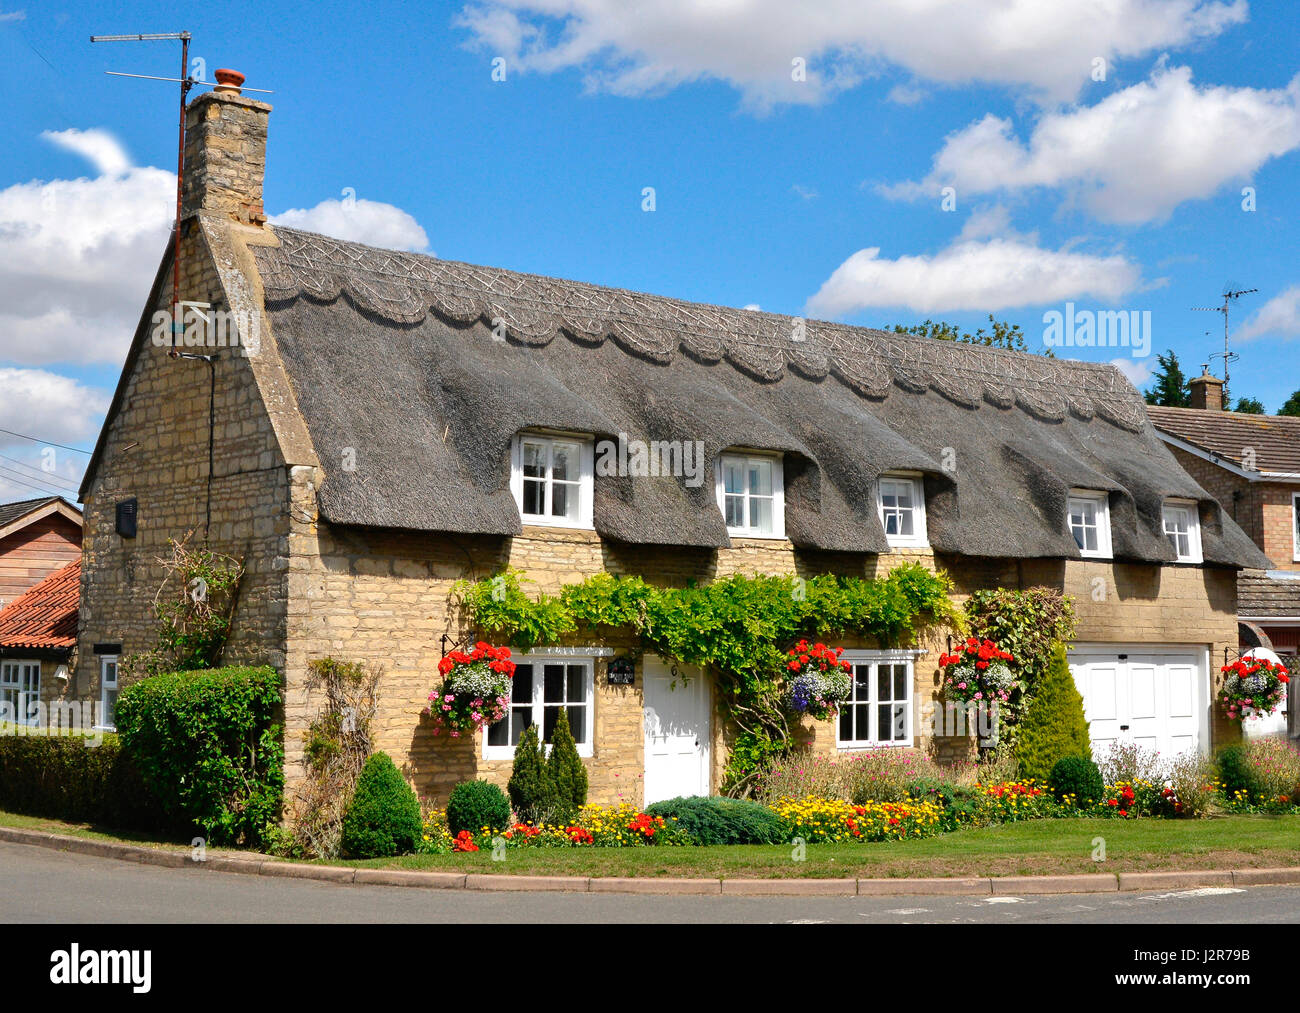 Traditional English thatched cottage with colourful garden - Stock Image